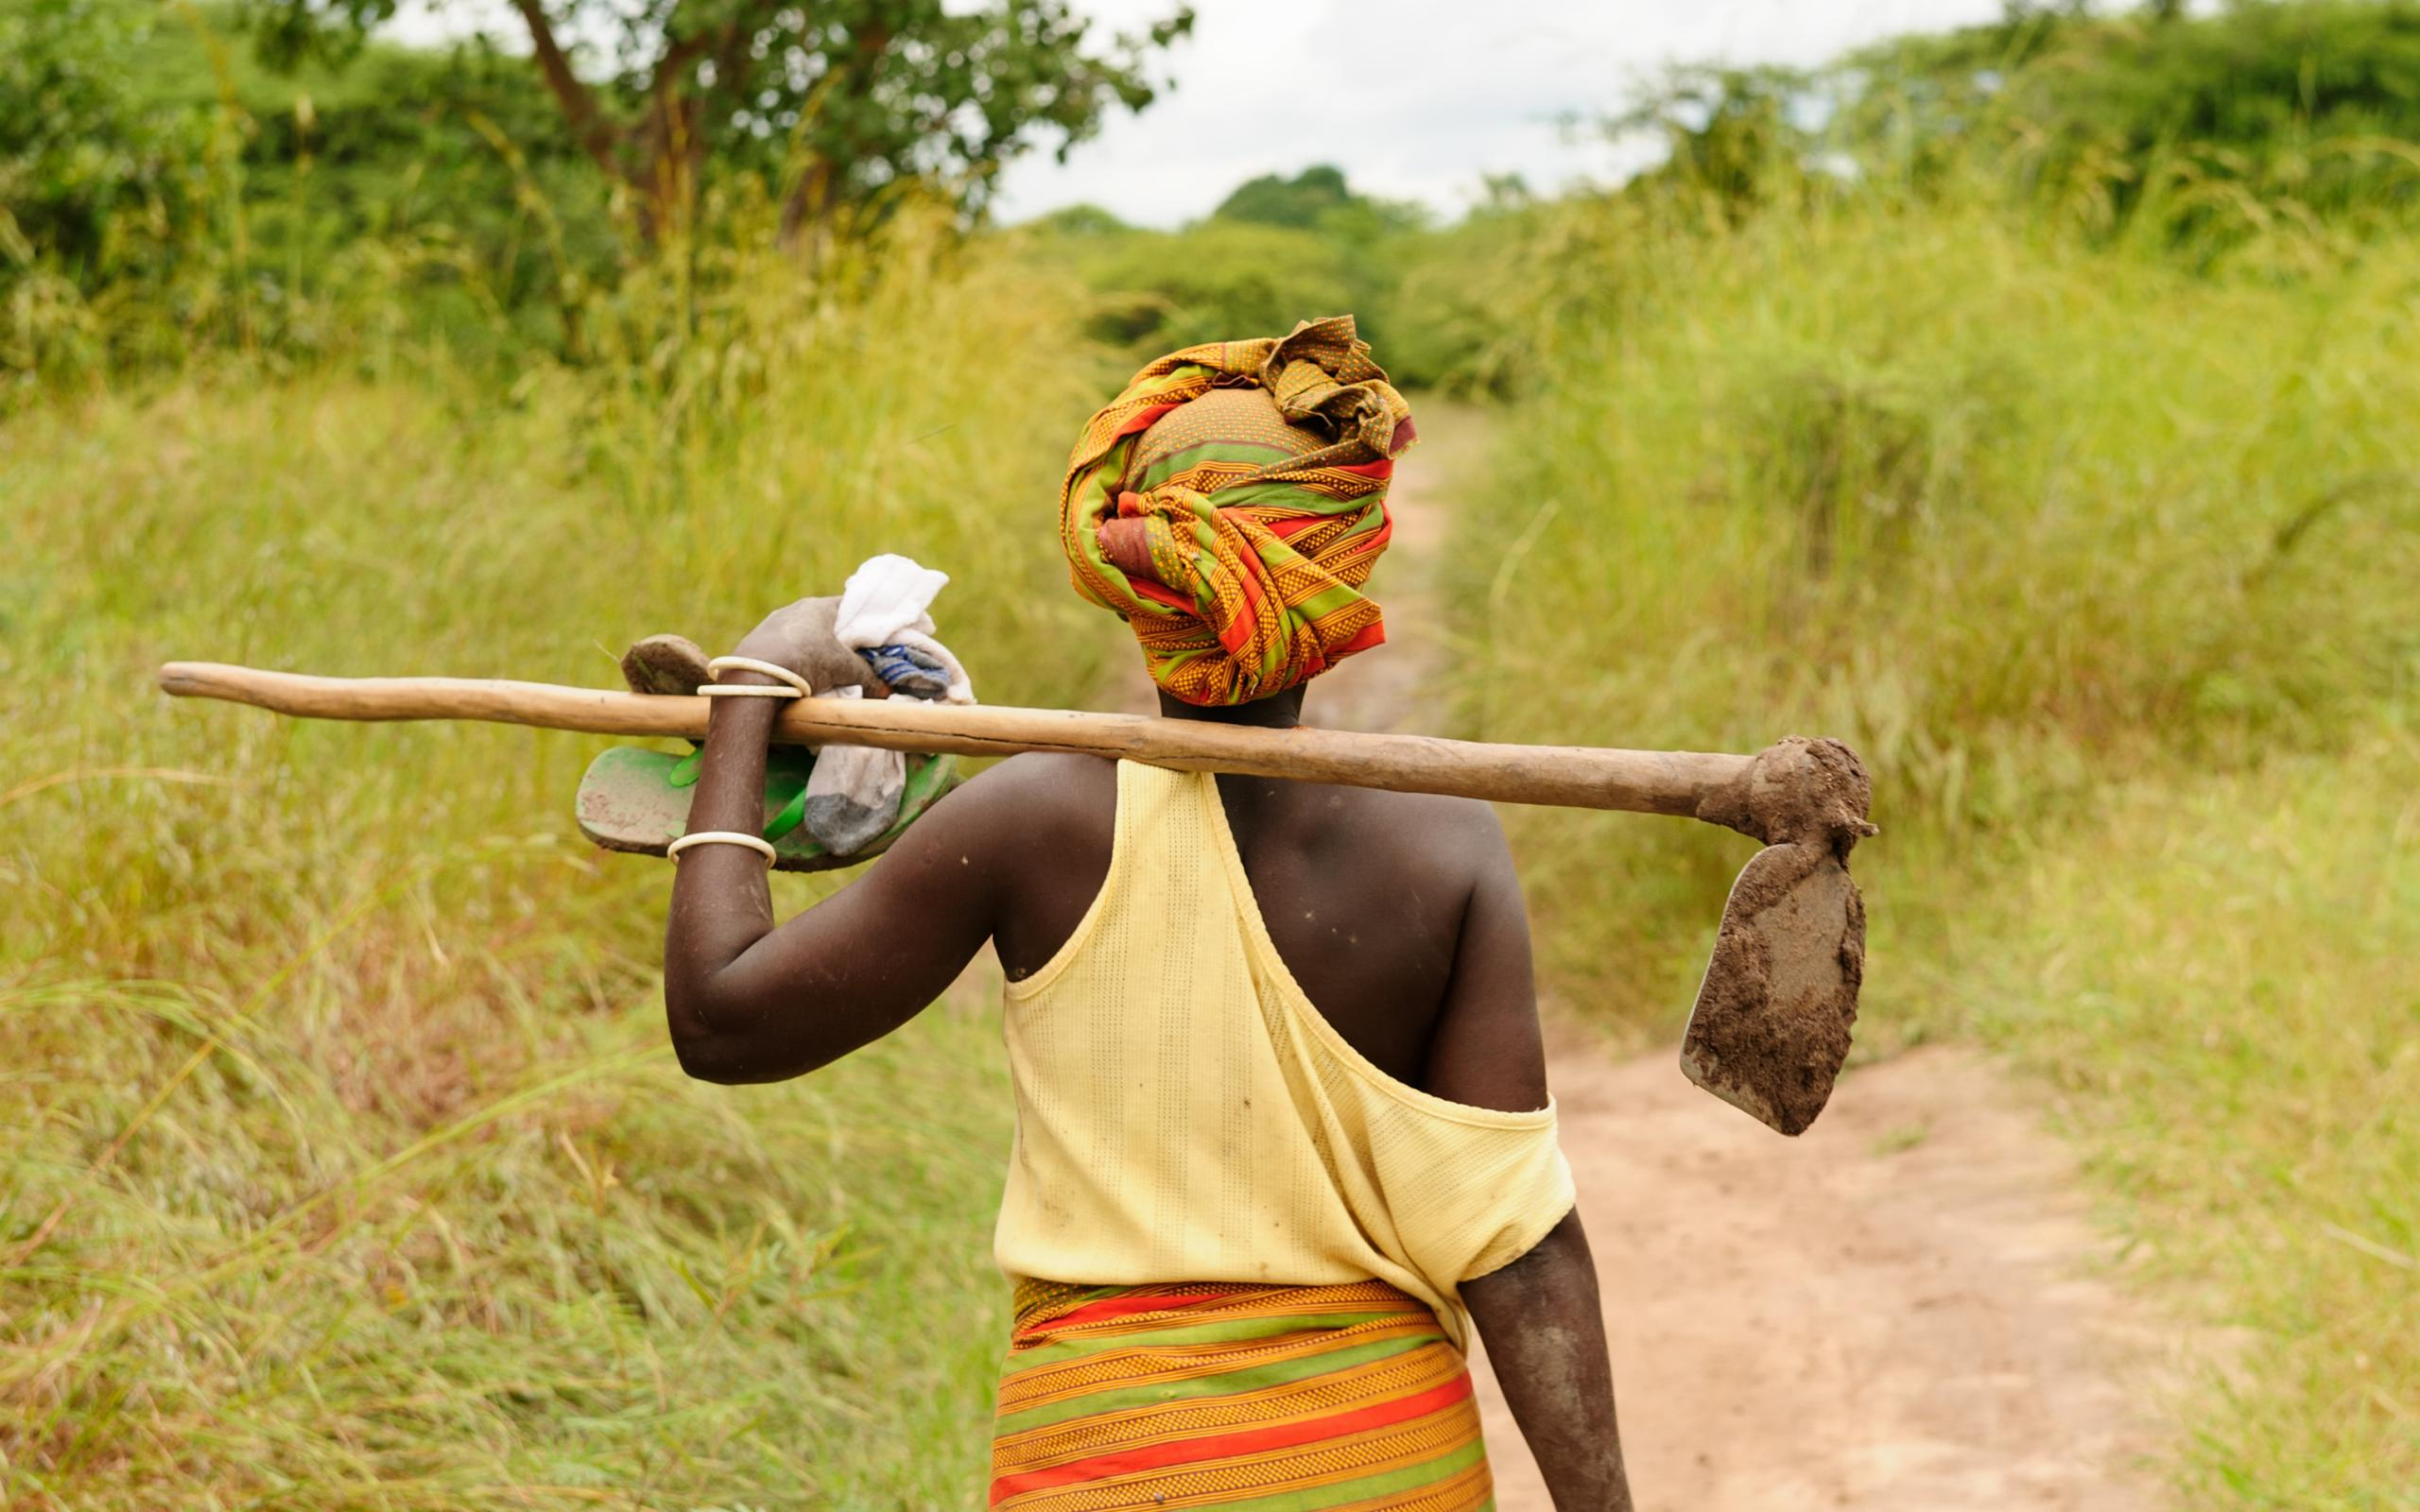 Woman walking with farm tool